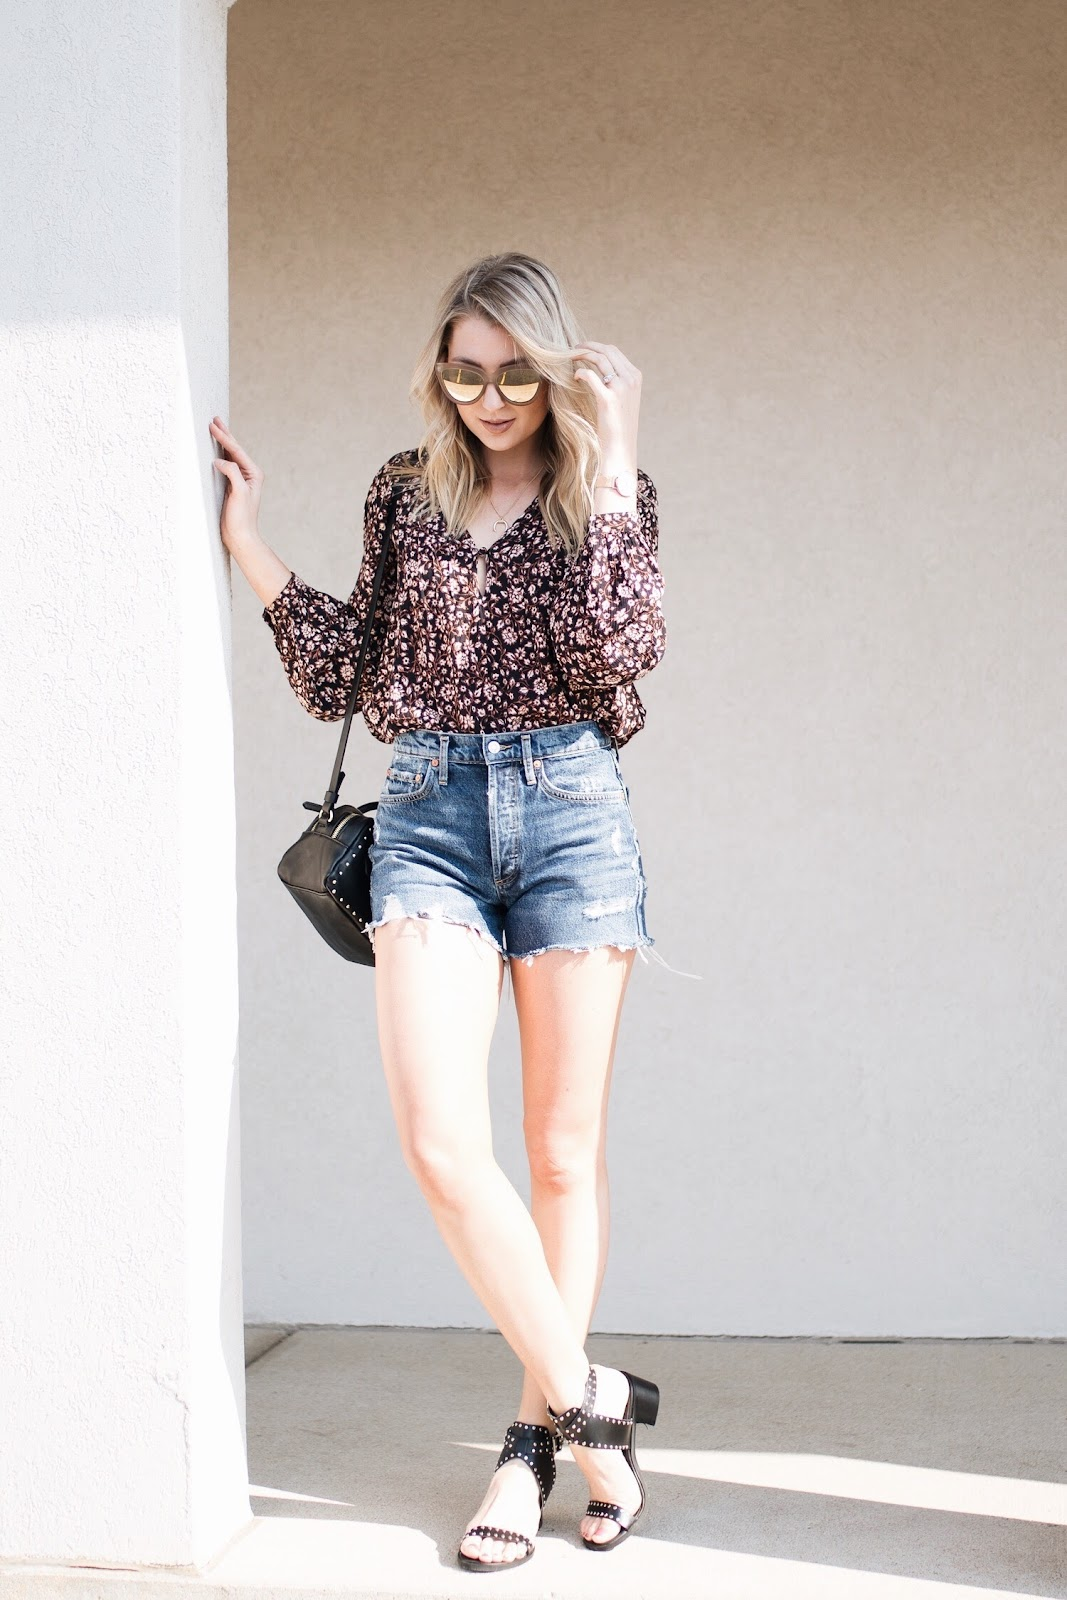 spring outfit idea: cutoffs, floral top, studded sandals